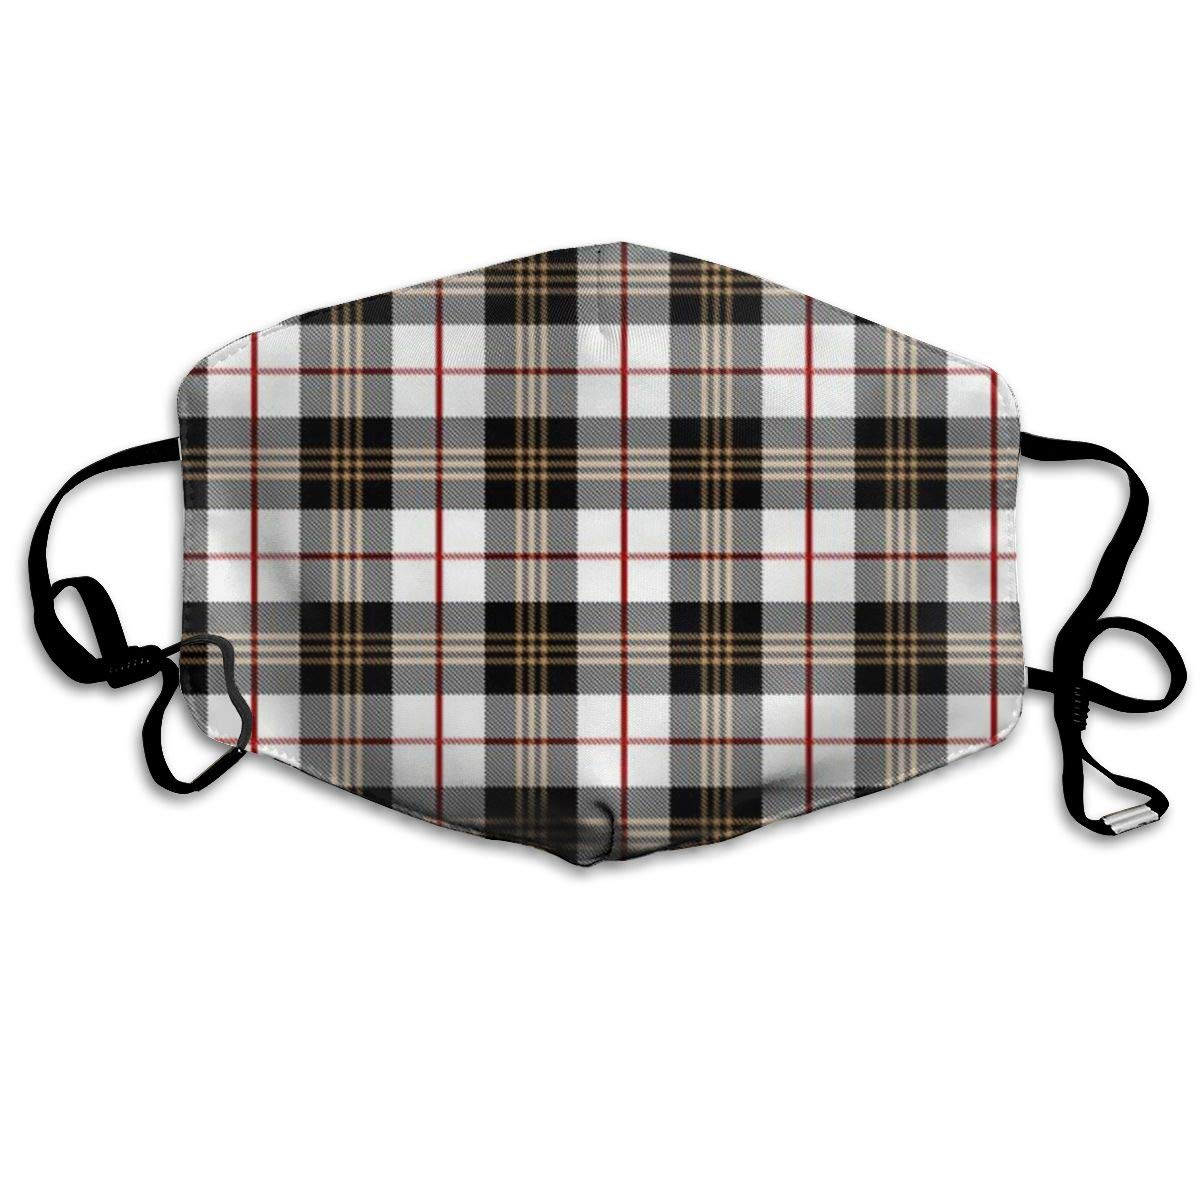 Mouth Mask Scottish Tartan Print Masks - Breathable Adjustable Windproof Mouth-Muffle, Camping Running For Women And Men